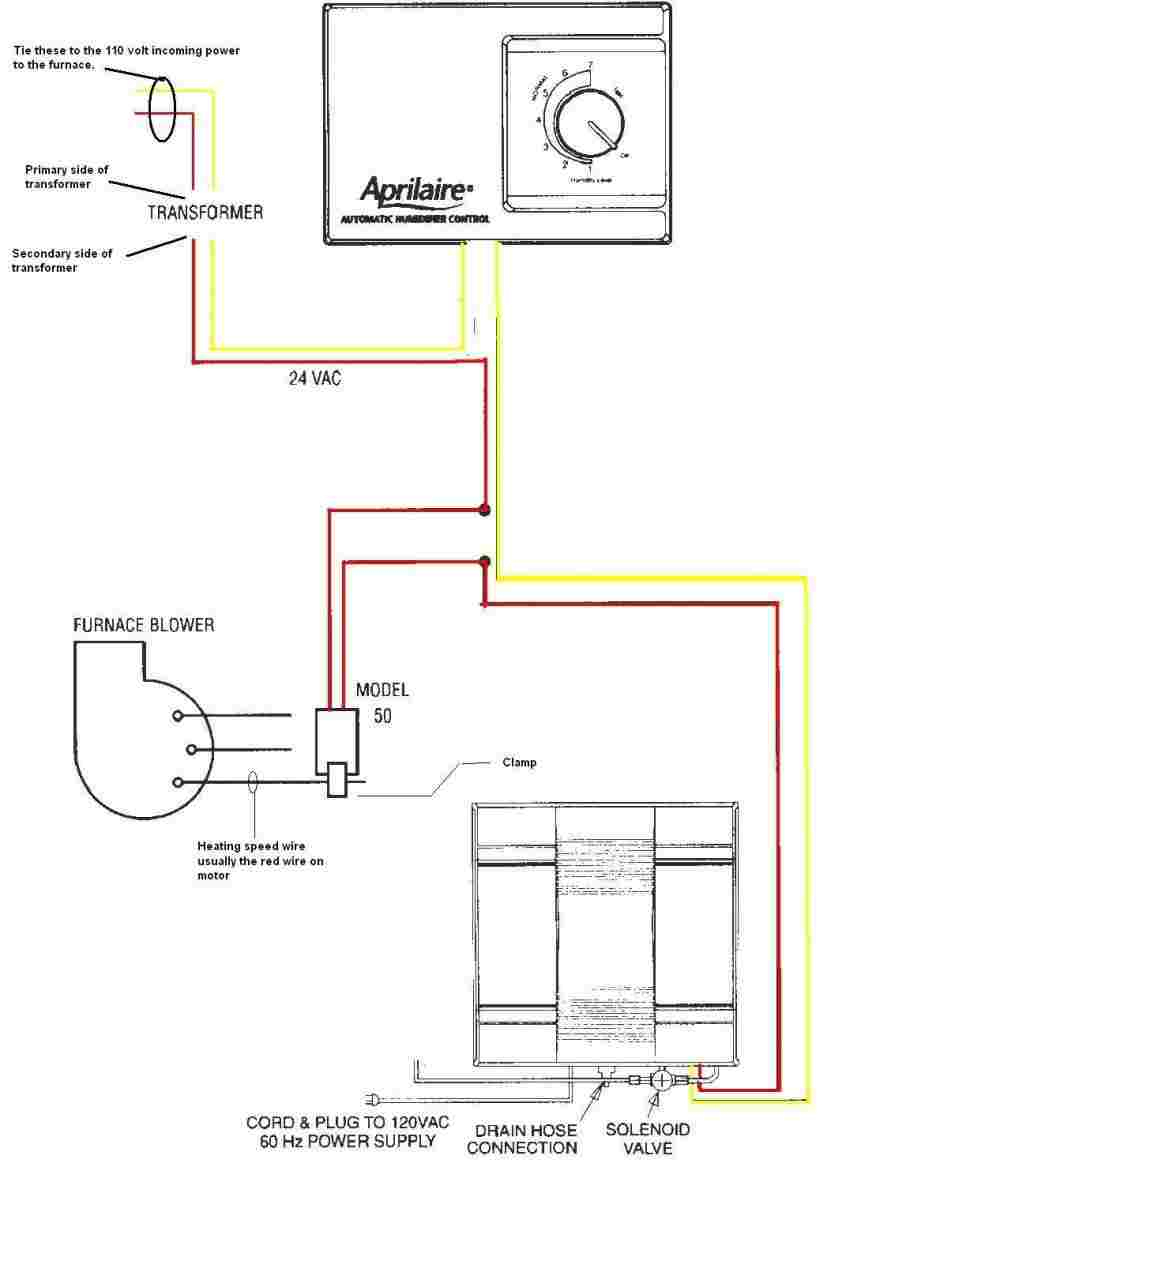 Thermostat-Nest-Humidifier-Wiring-Diagram-Free-Download-Rhdefenticco - Lennox Nest Wiring Diagram